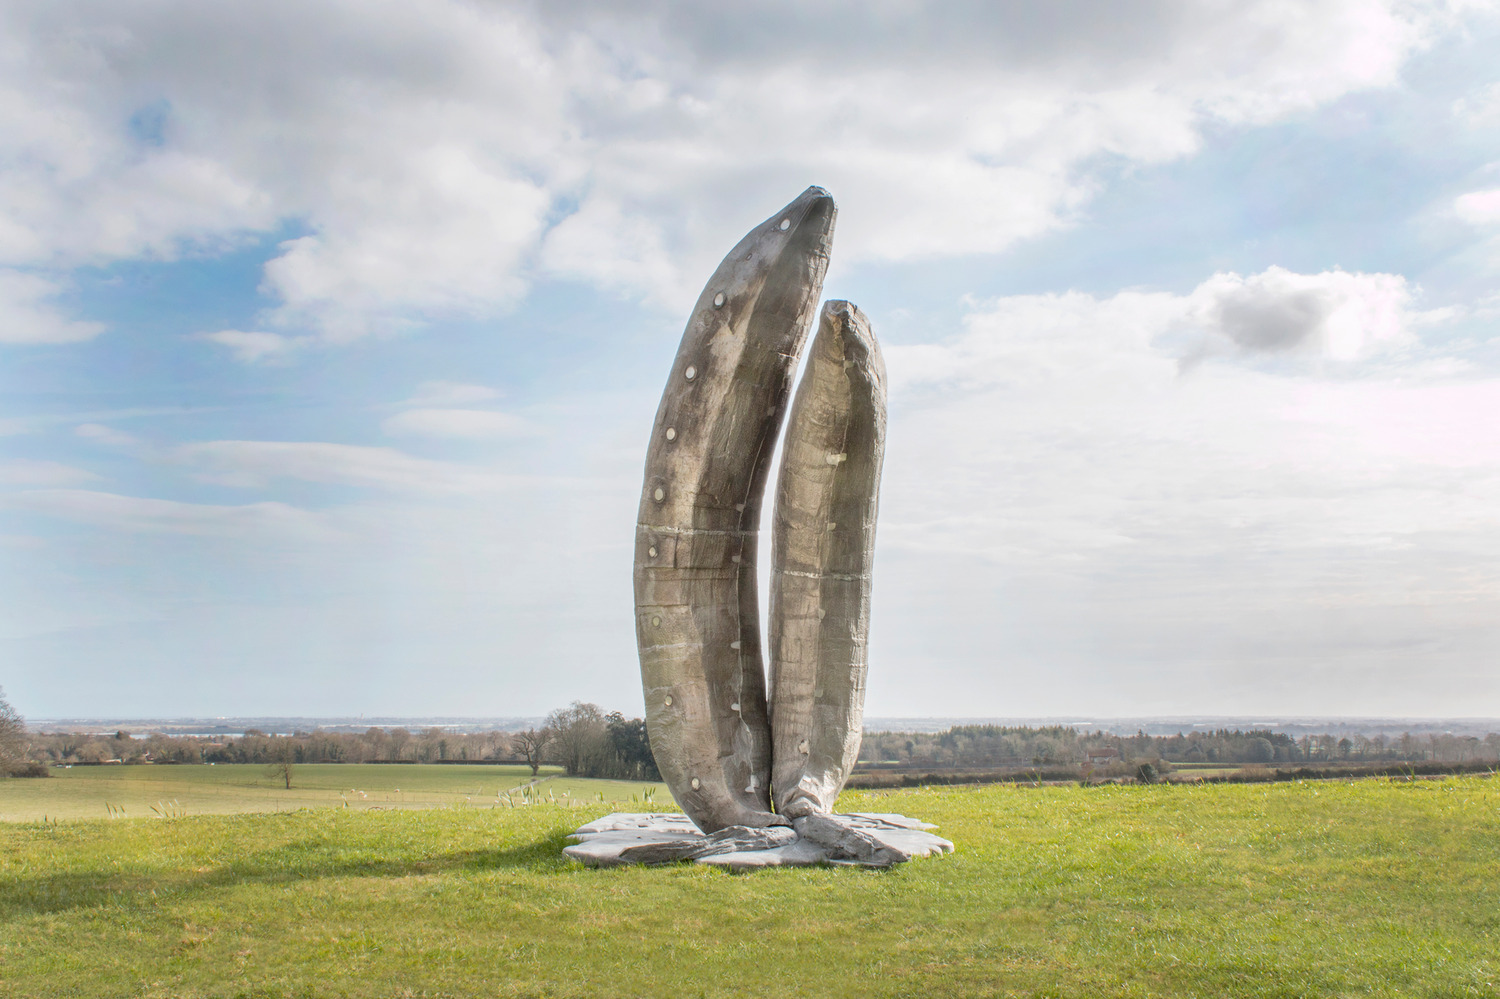 Two Old Bananas, 2013, Cast aluminum, 3 parts, 305 x 217 x 180 cm, Edition of 3 + 1 AP